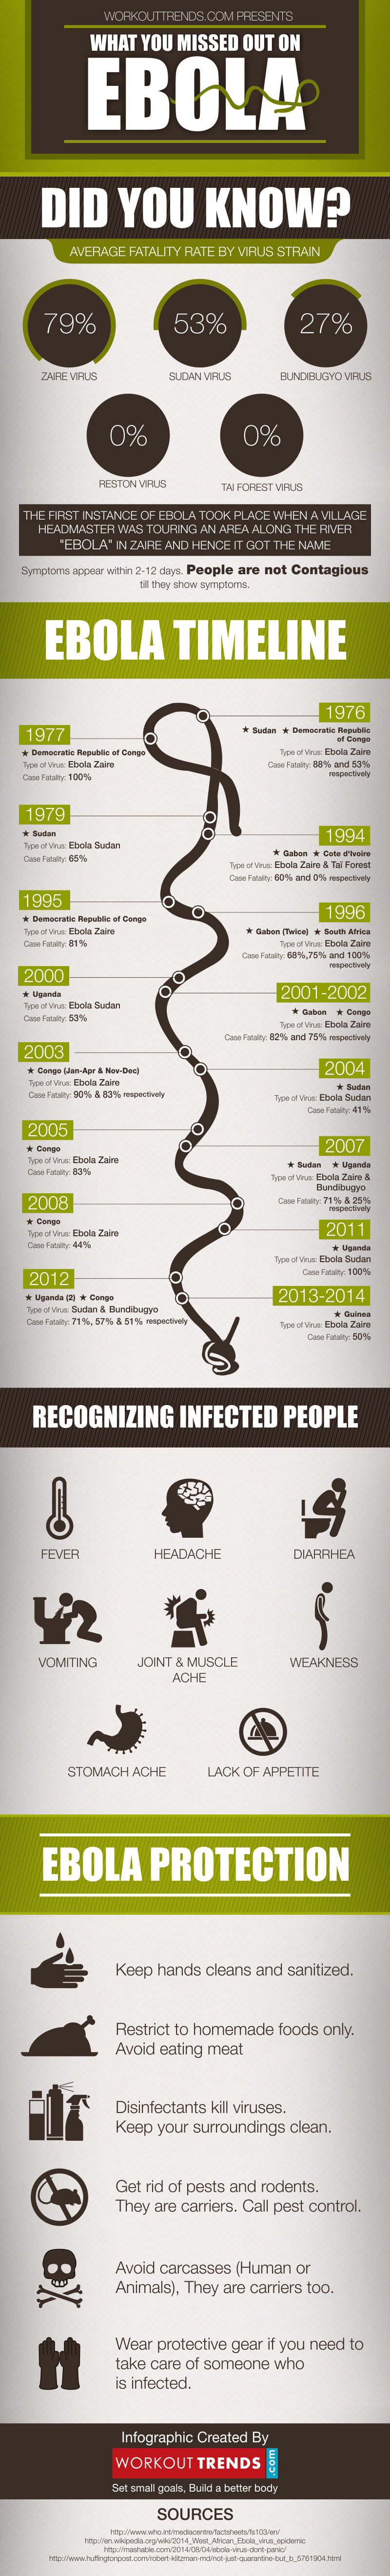 The Ebola Timeline infographic